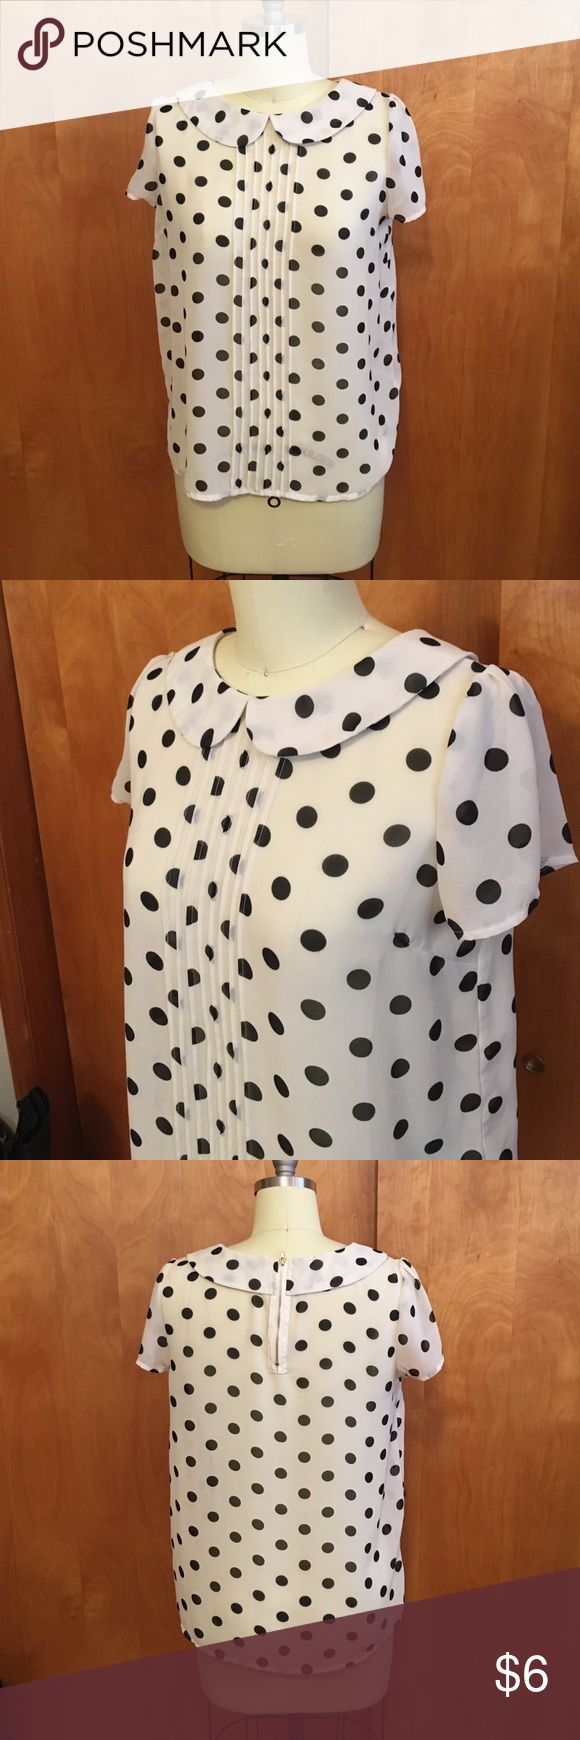 Sheer short sleeve polka dot shirt Off white short sleeve collard sheer top with black polka dots, zipper in back, gently used. Bundle discount buy 3 items or more get 30% off! Forever 21 Tops Blouses